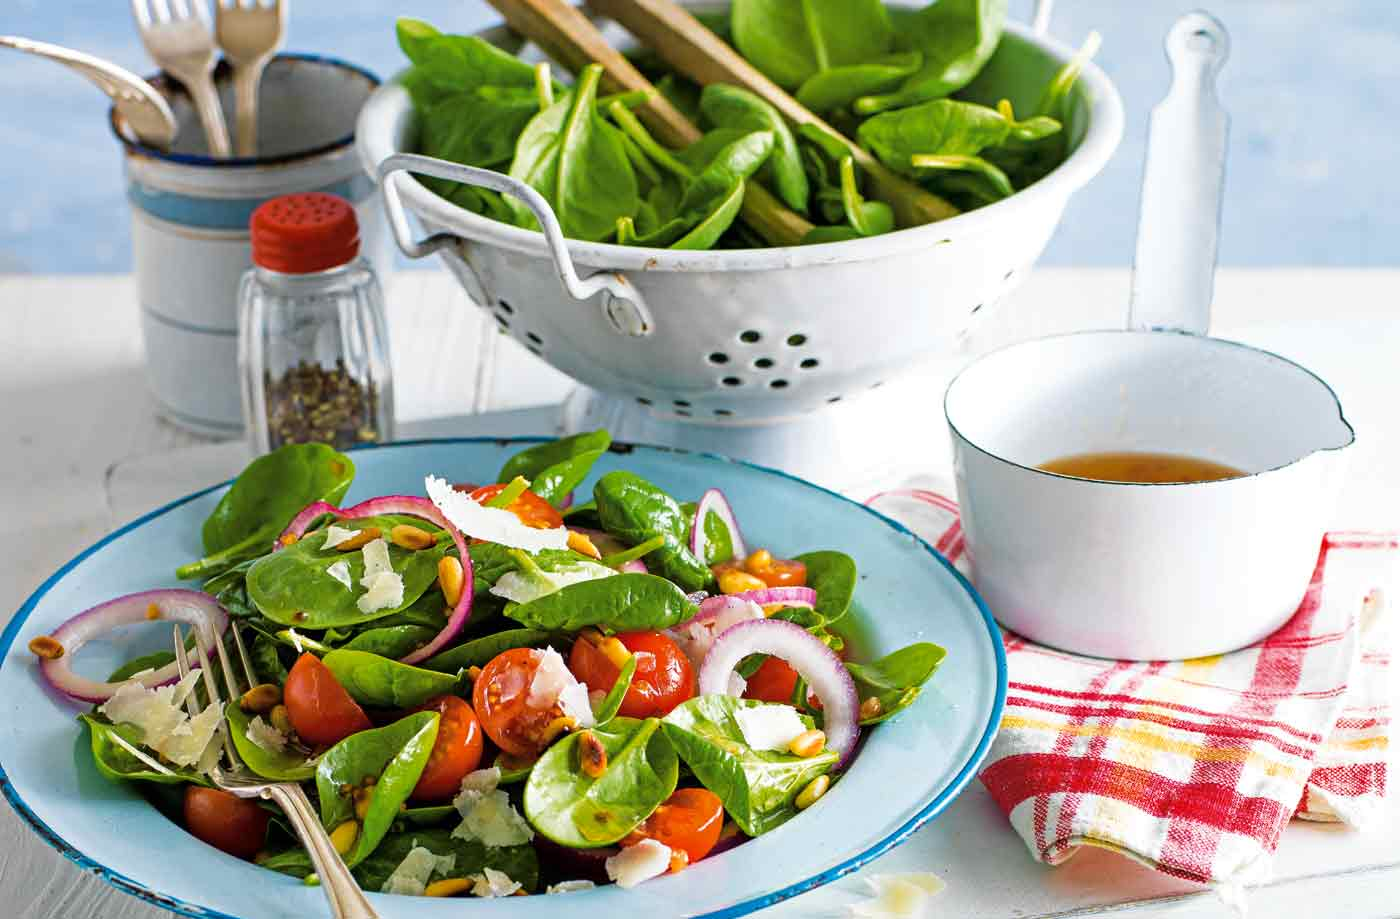 Spinach salad with warm lemon and garlic dressing recipe